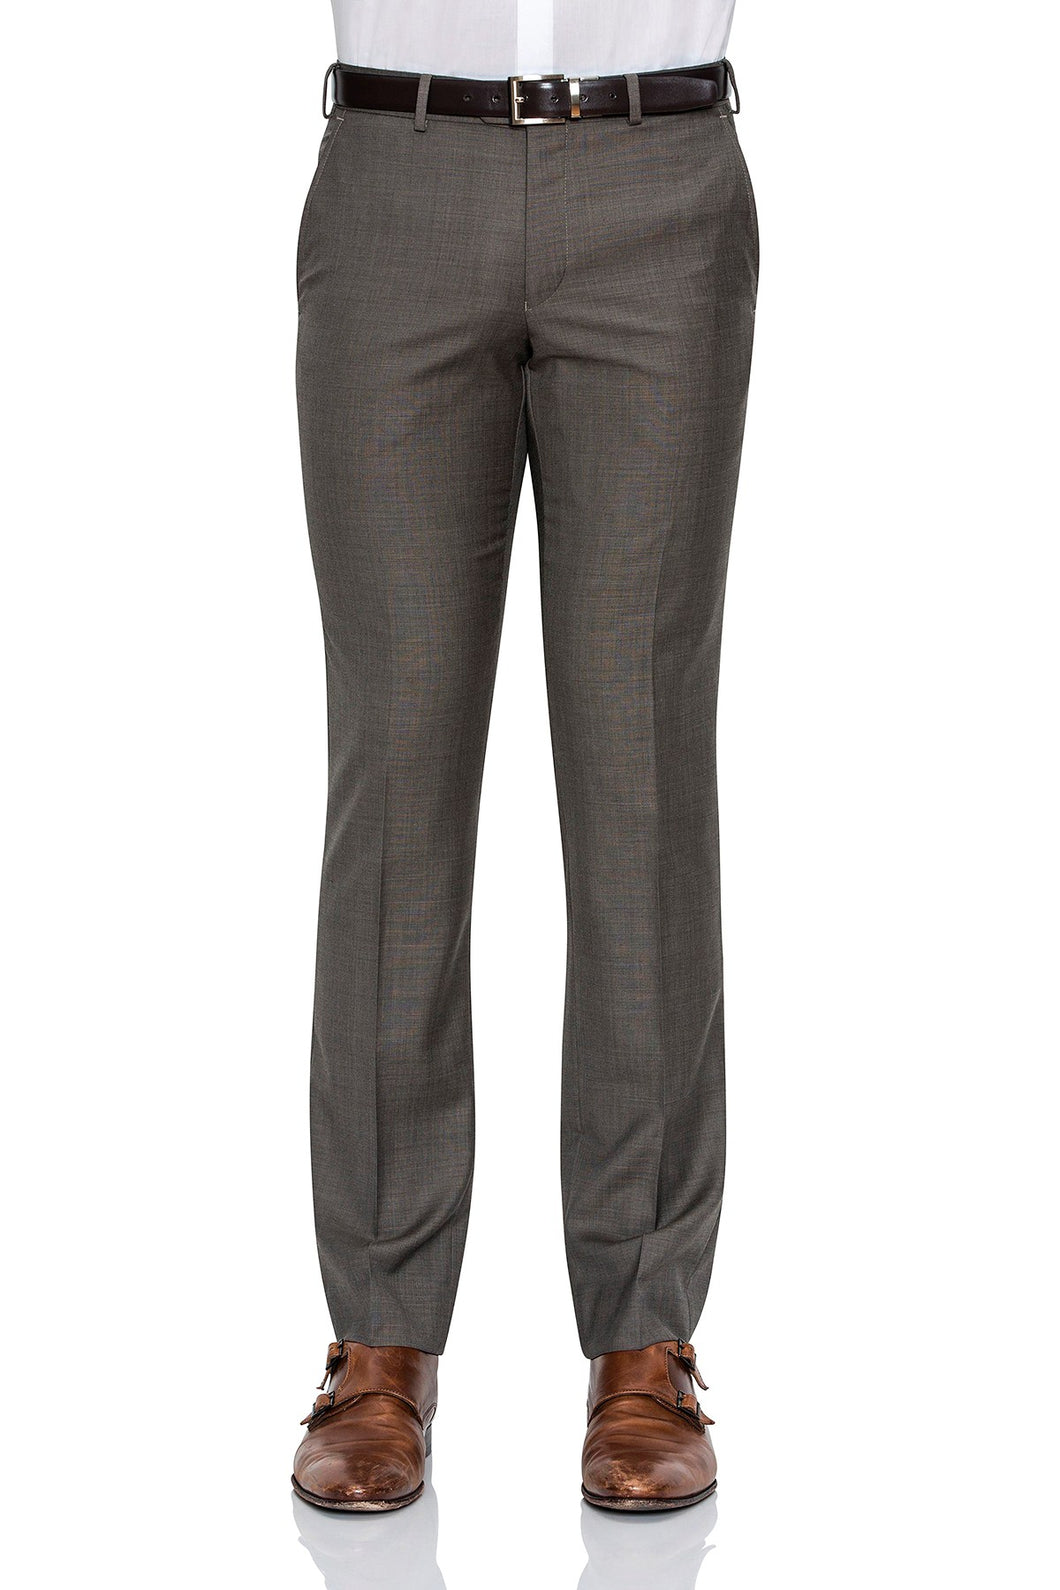 Cambridge Jett Trouser F2042